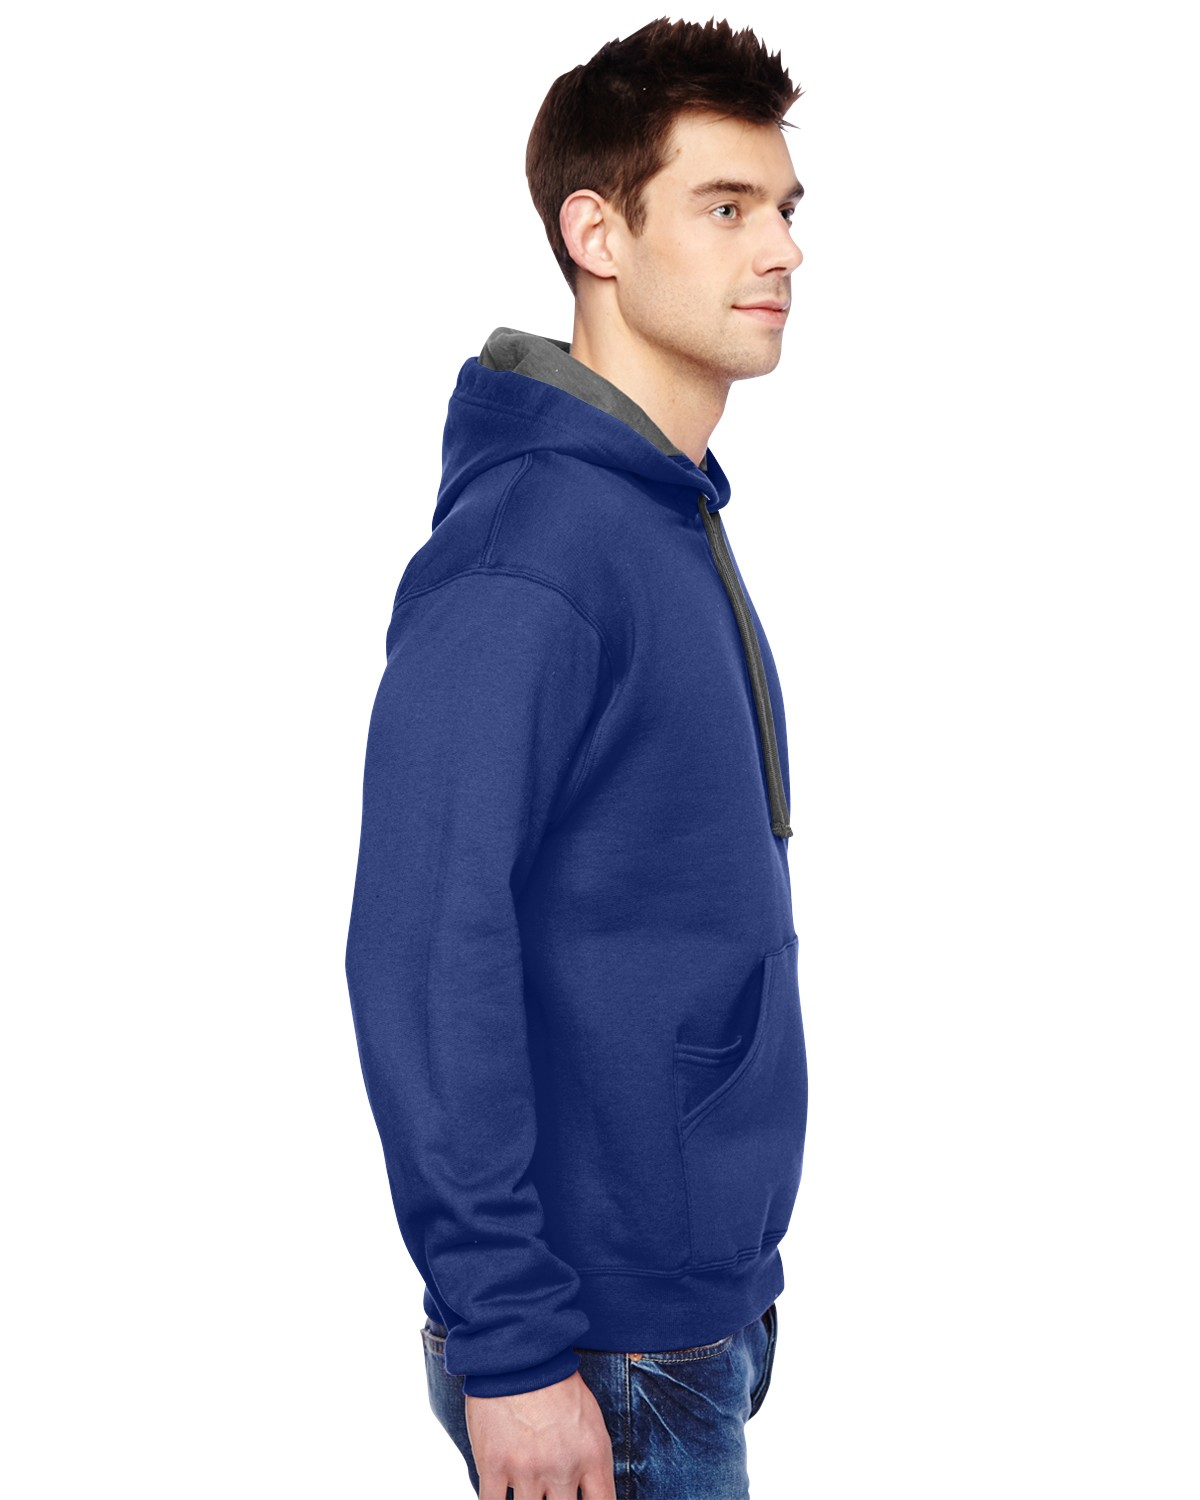 SF76R Fruit of the Loom ADMIRAL BLUE